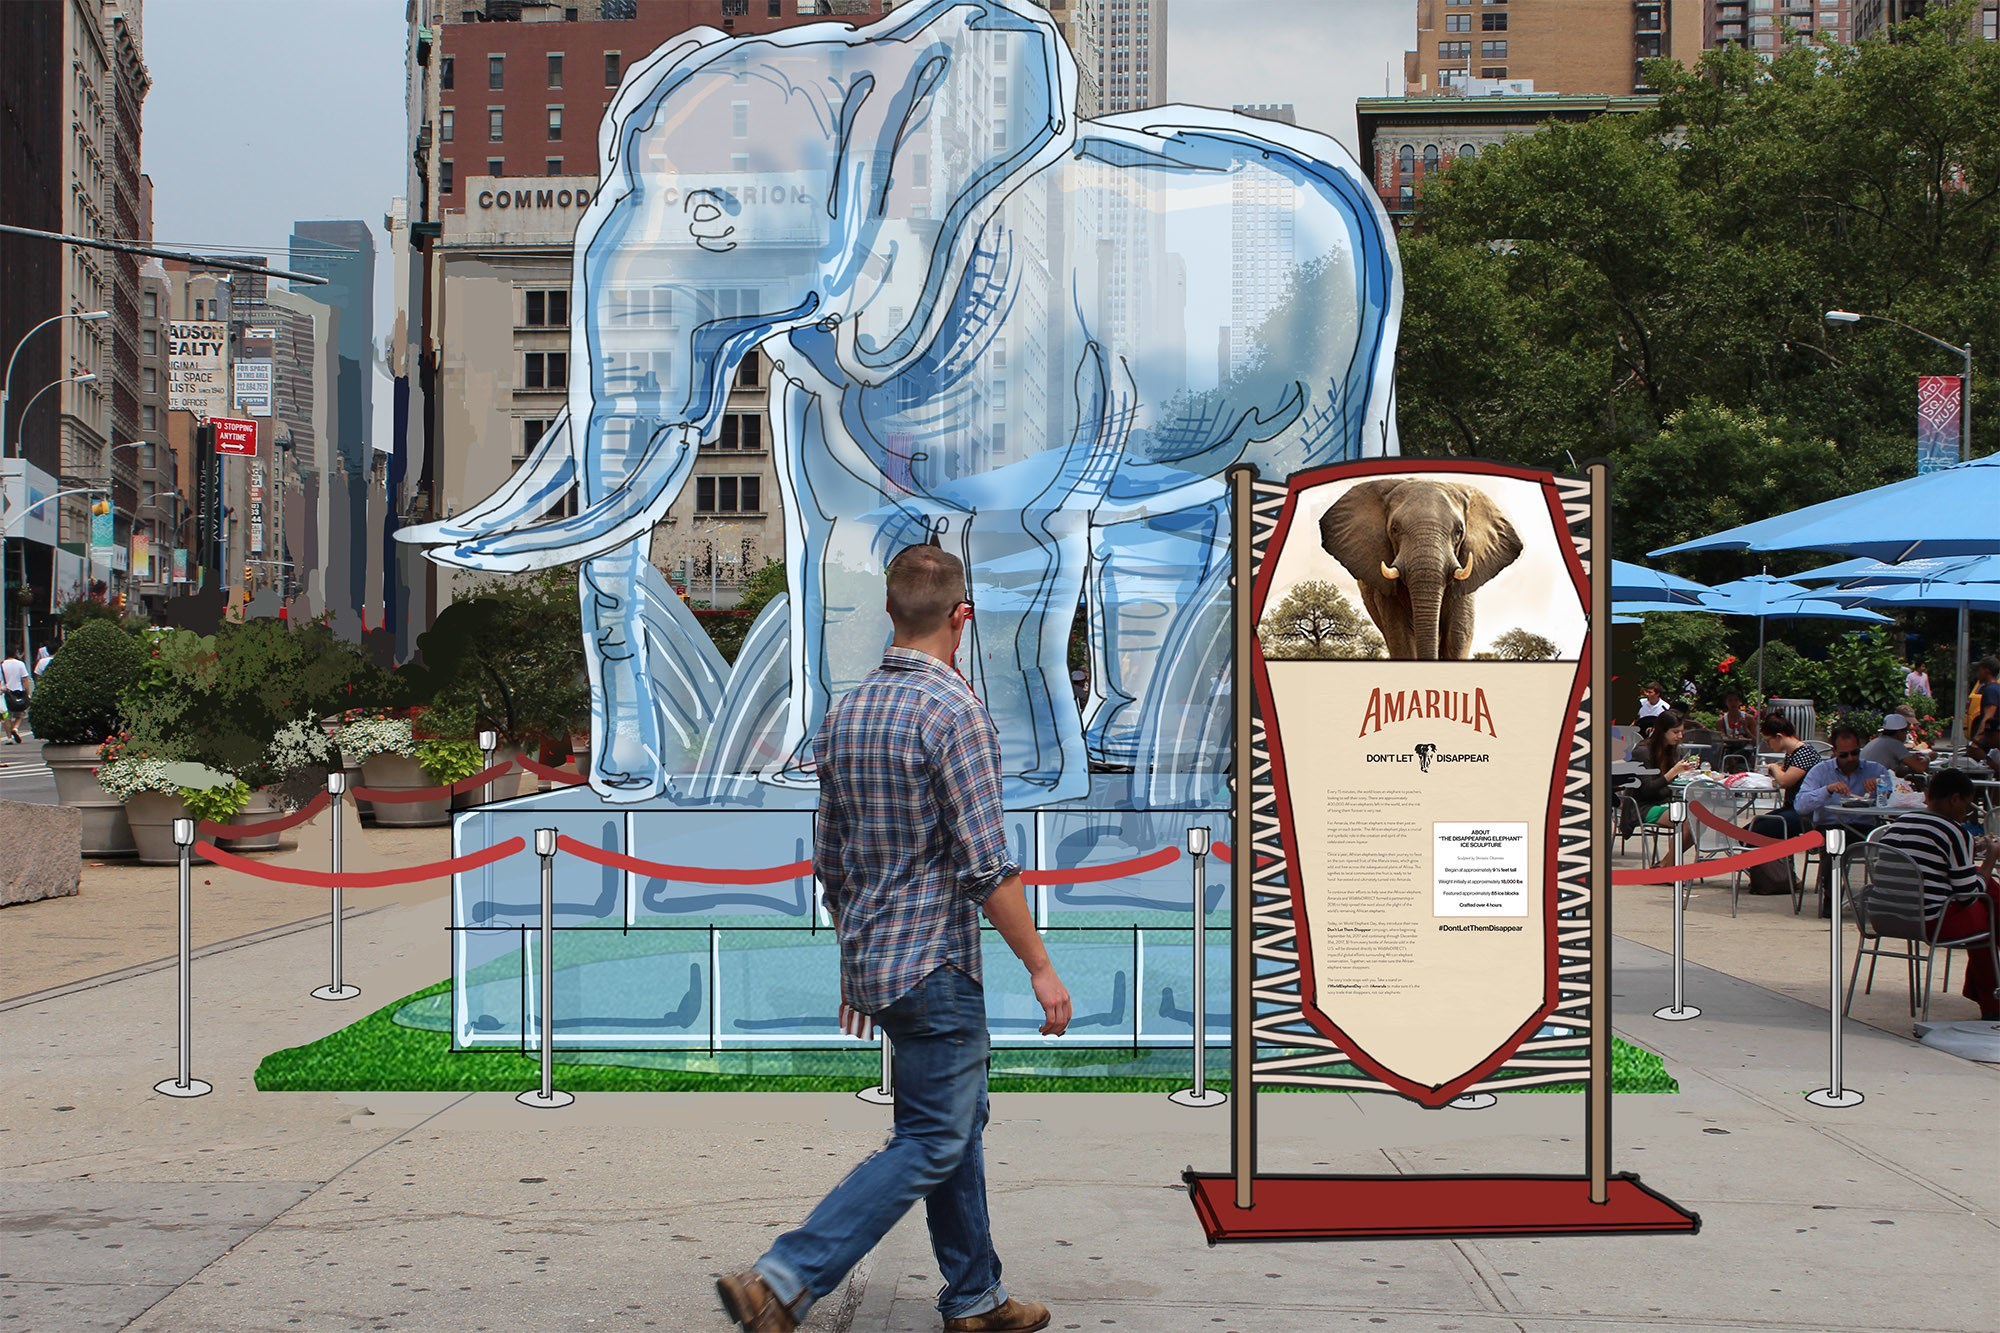 For World Elephant Day New York City Brings A Life-size Ice Sculpture To Raise Awareness photo